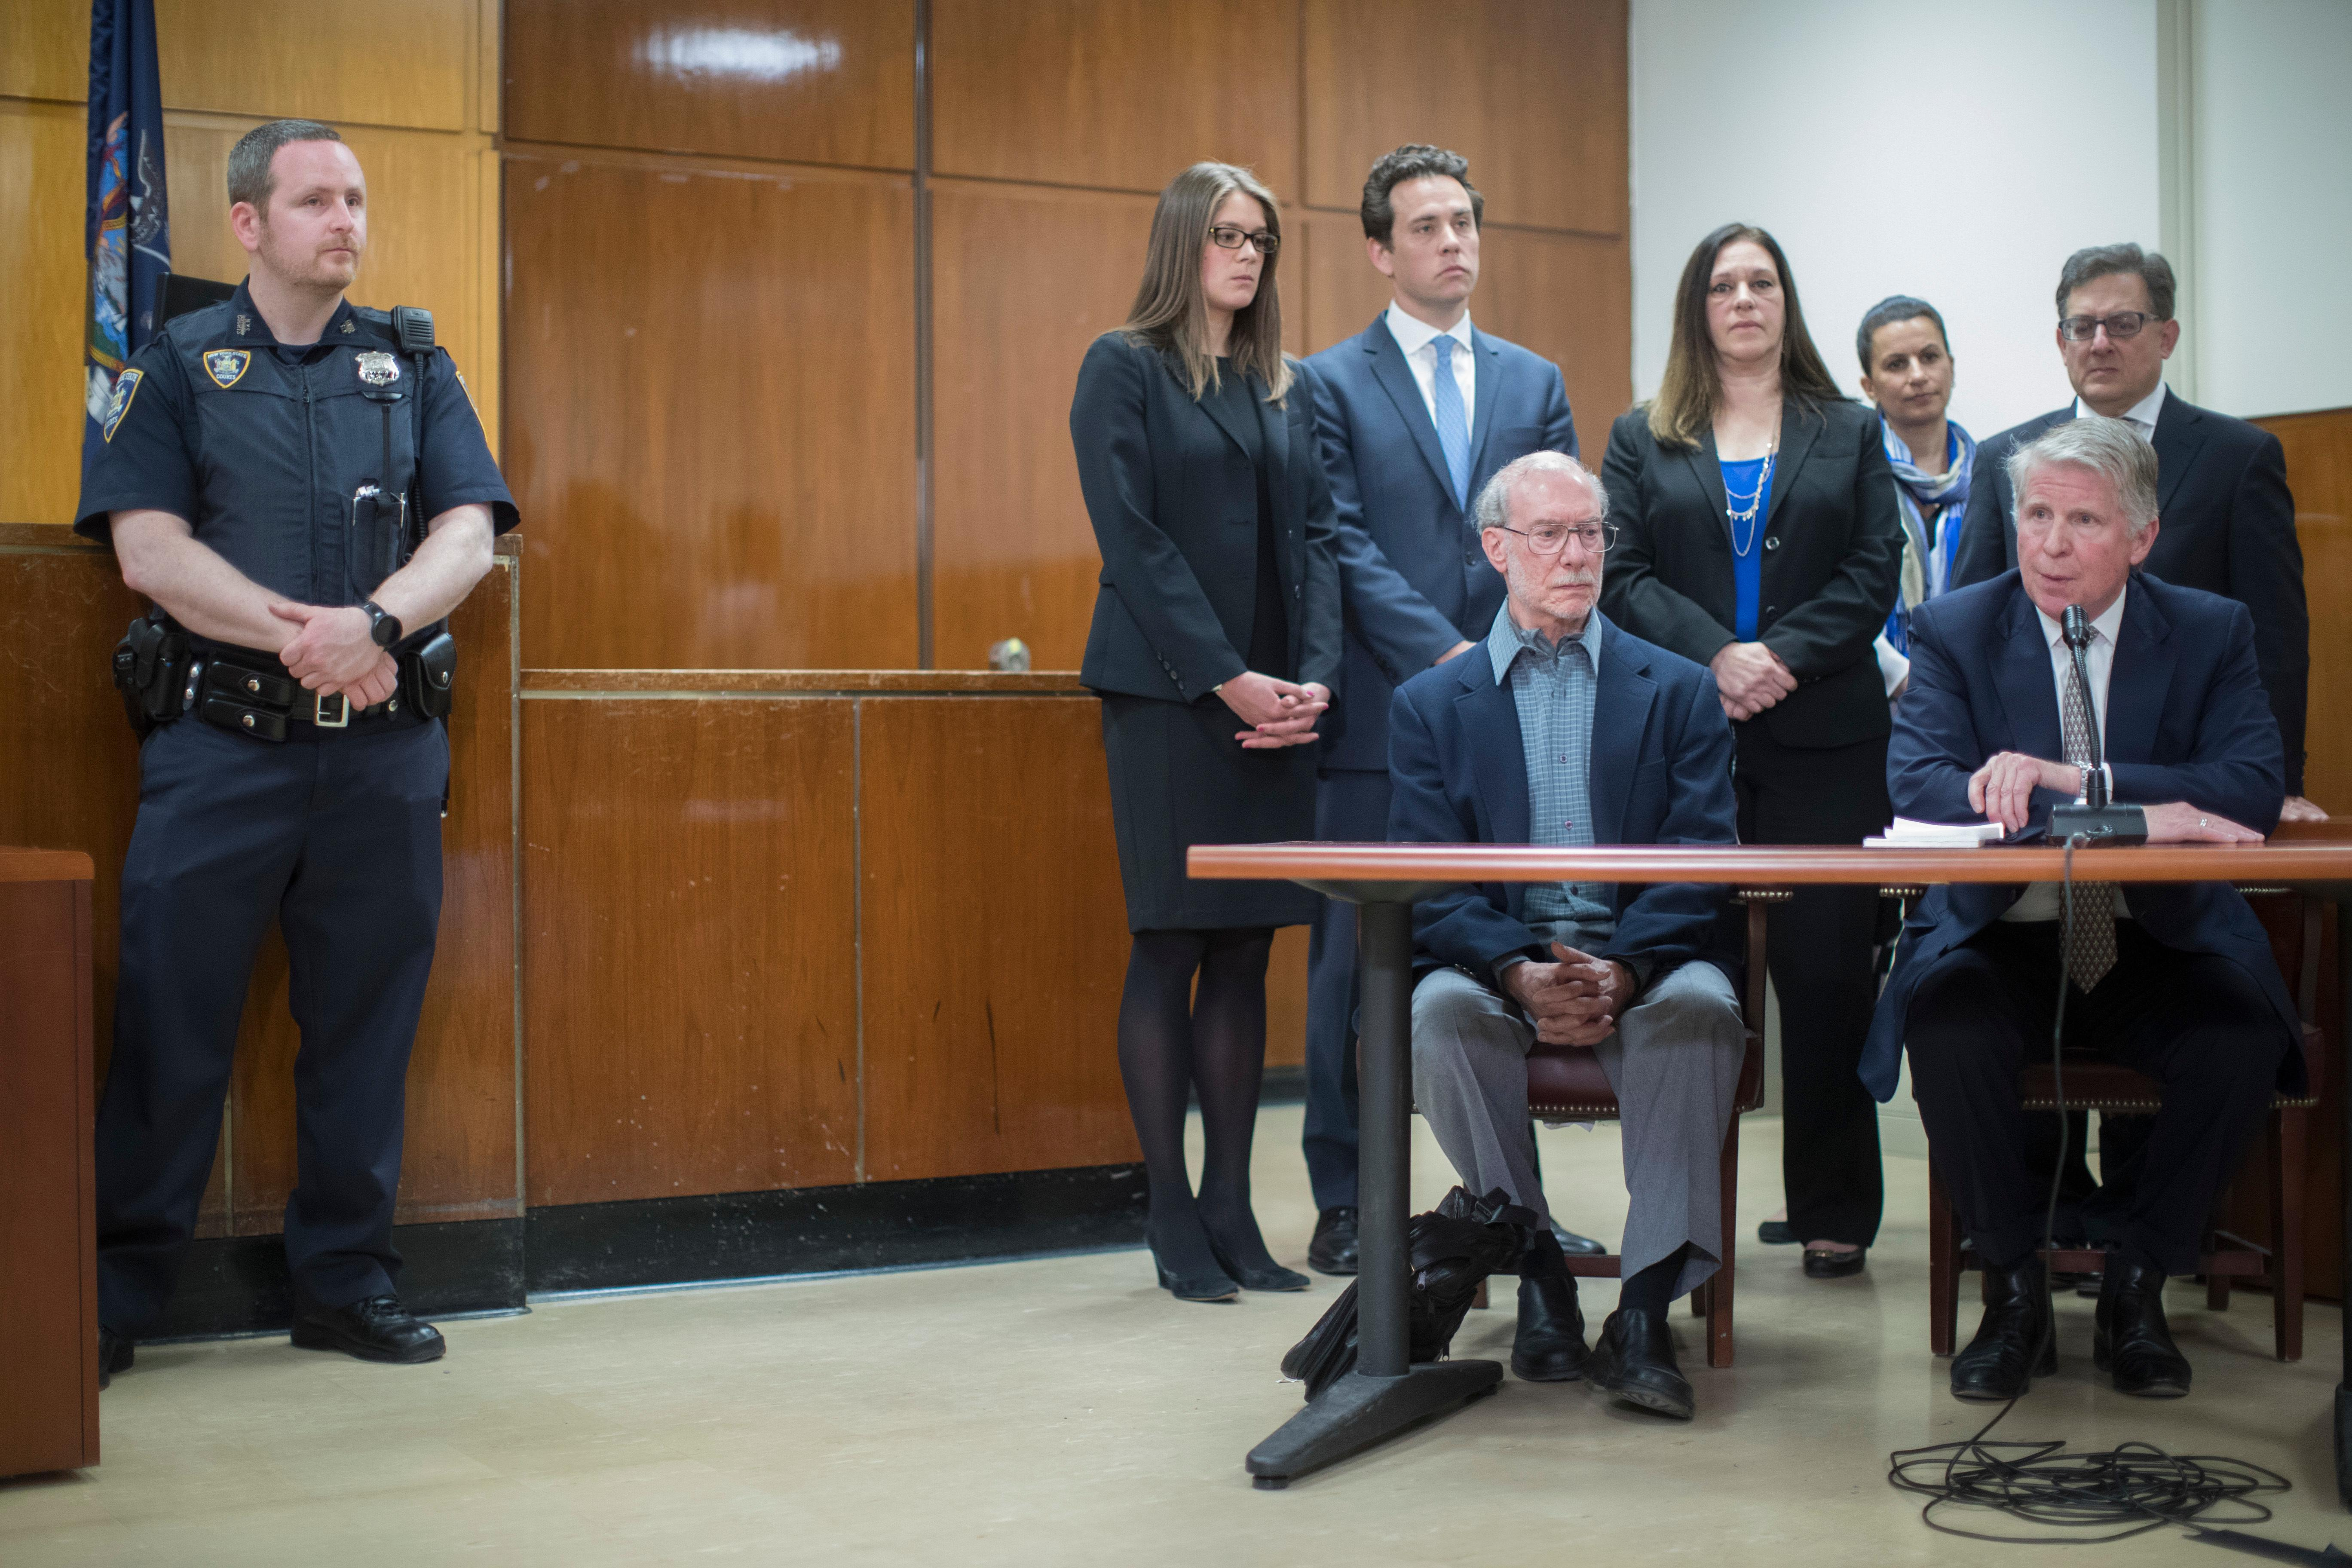 Stan Patz, foreground left, father of 6-year-old Etan Patz, is joined by Manhattan District Attorney Cy Vance, foreground right, Assistant District Attorney Joel Seidemann, background right, and Assistant District Attorney Joan Illuzzi-Orbon, second from right , background, as they speak to reporters after Pedro Hernandez, the man convicted of killing 6-year-old Etan Patz, one of America's most notorious missing-child cases, was sentenced at Manhattan Supreme Court, in New York, Tuesday, April 18, 2017. (AP Photo/Mary Altaffer)